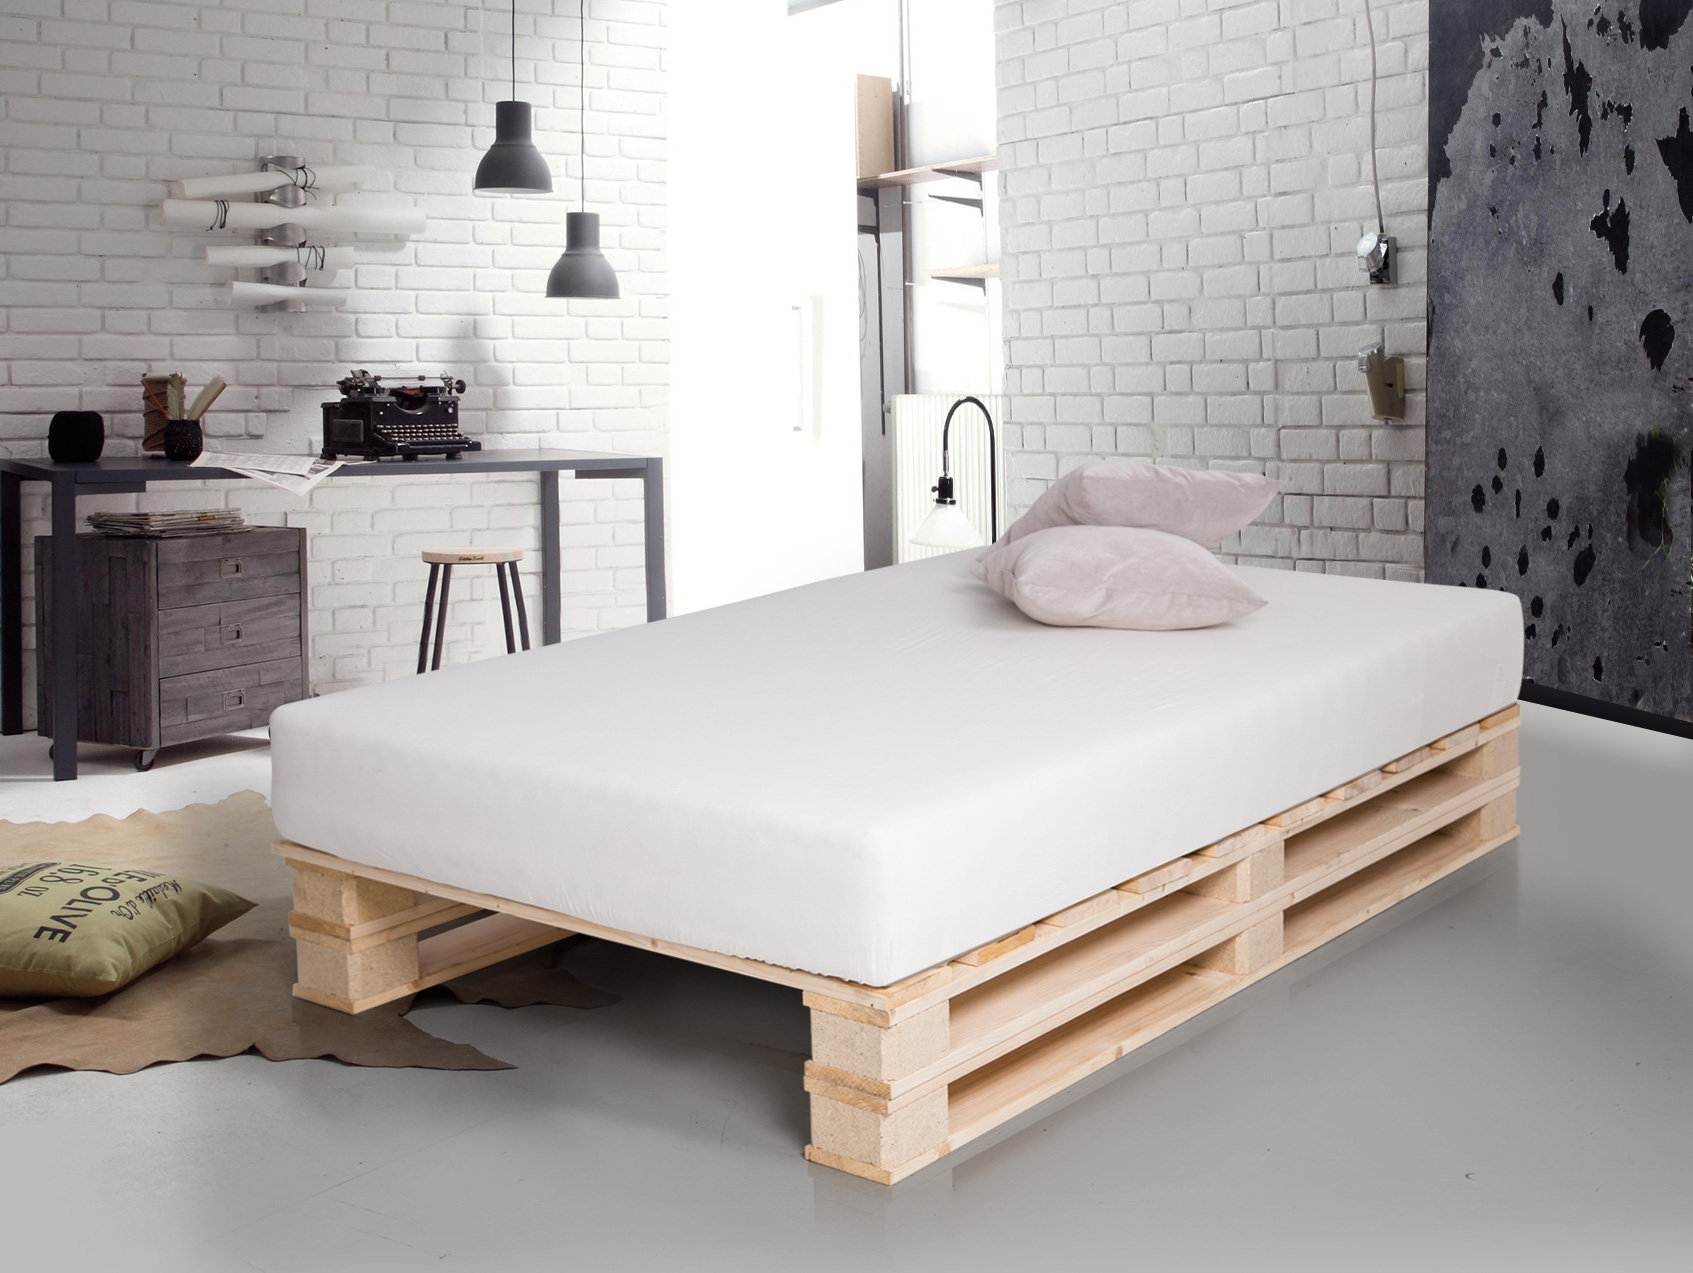 paletti duo massivholzbett aus paletten 120 x 200 cm. Black Bedroom Furniture Sets. Home Design Ideas